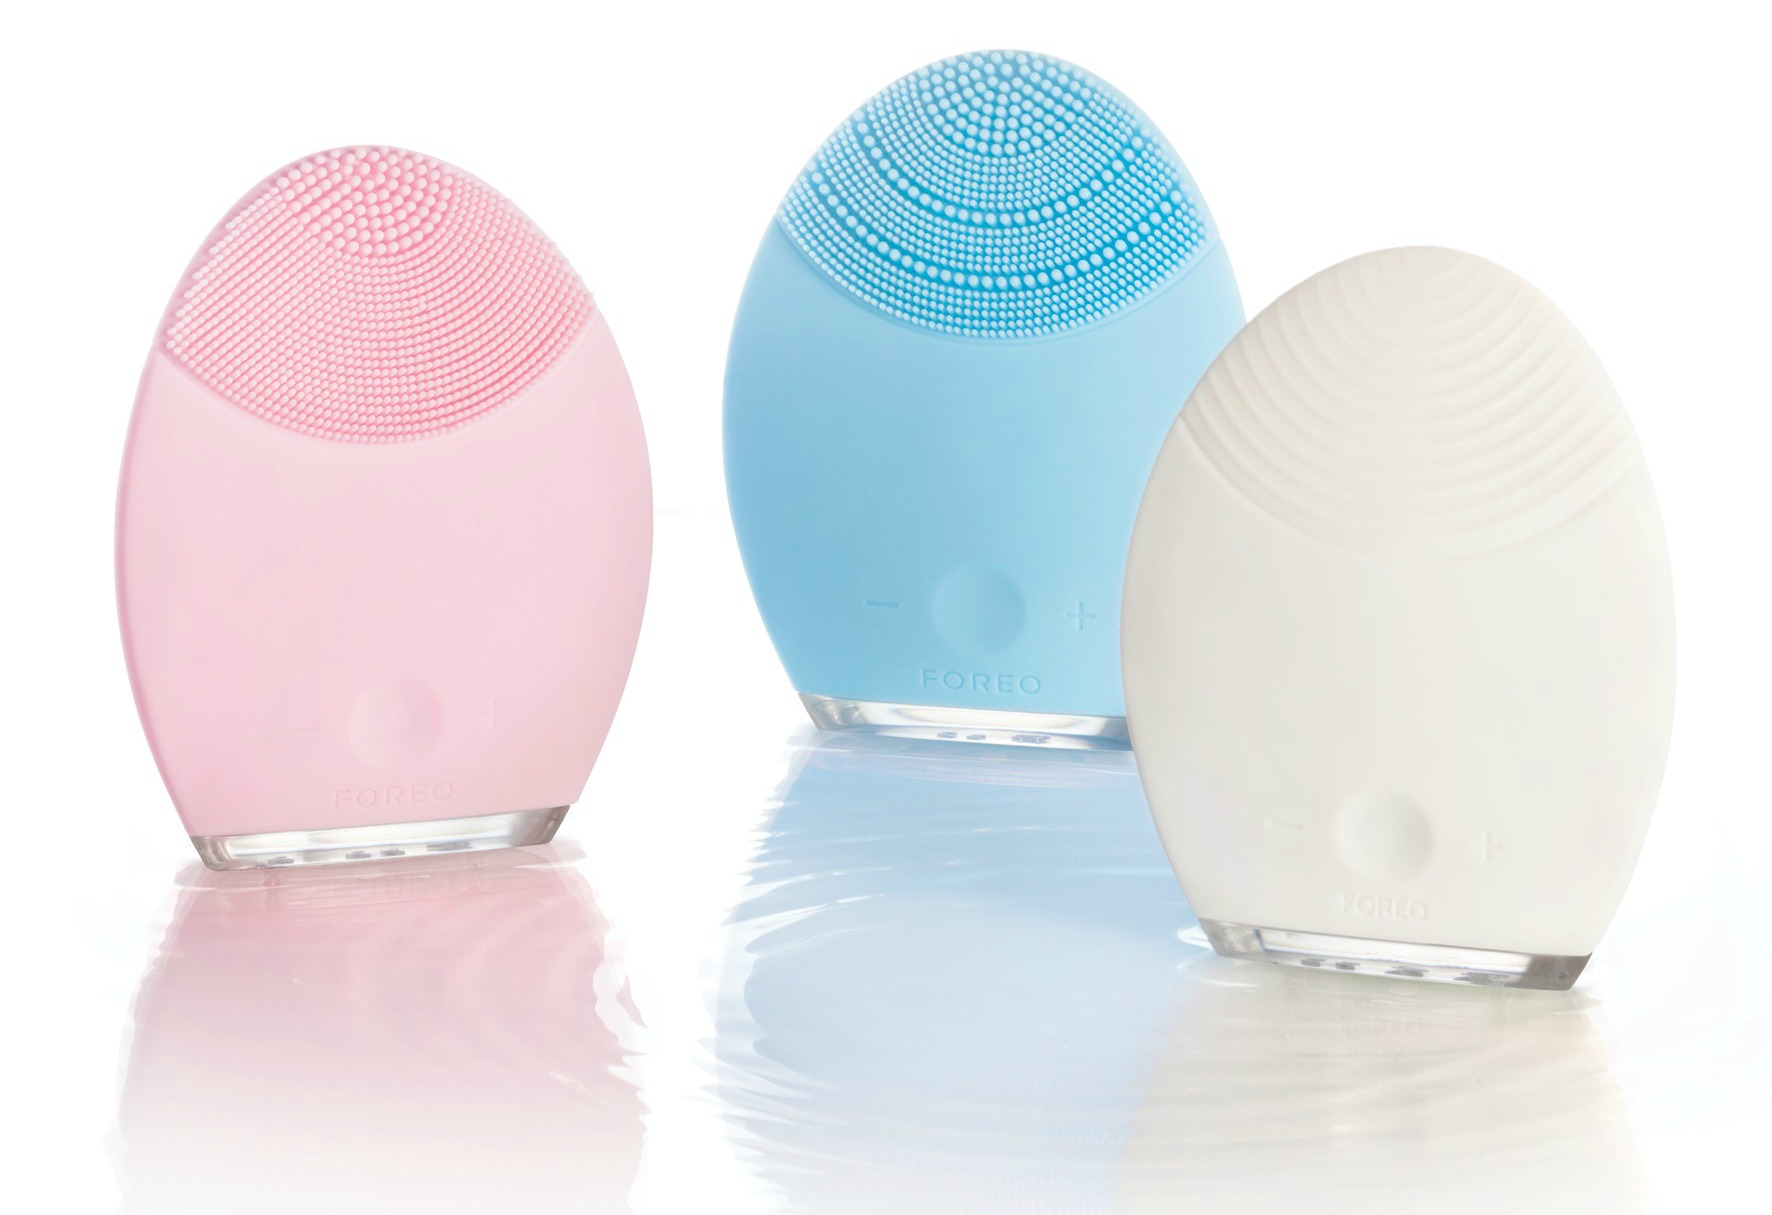 Foreo Luna Face Cleaning System